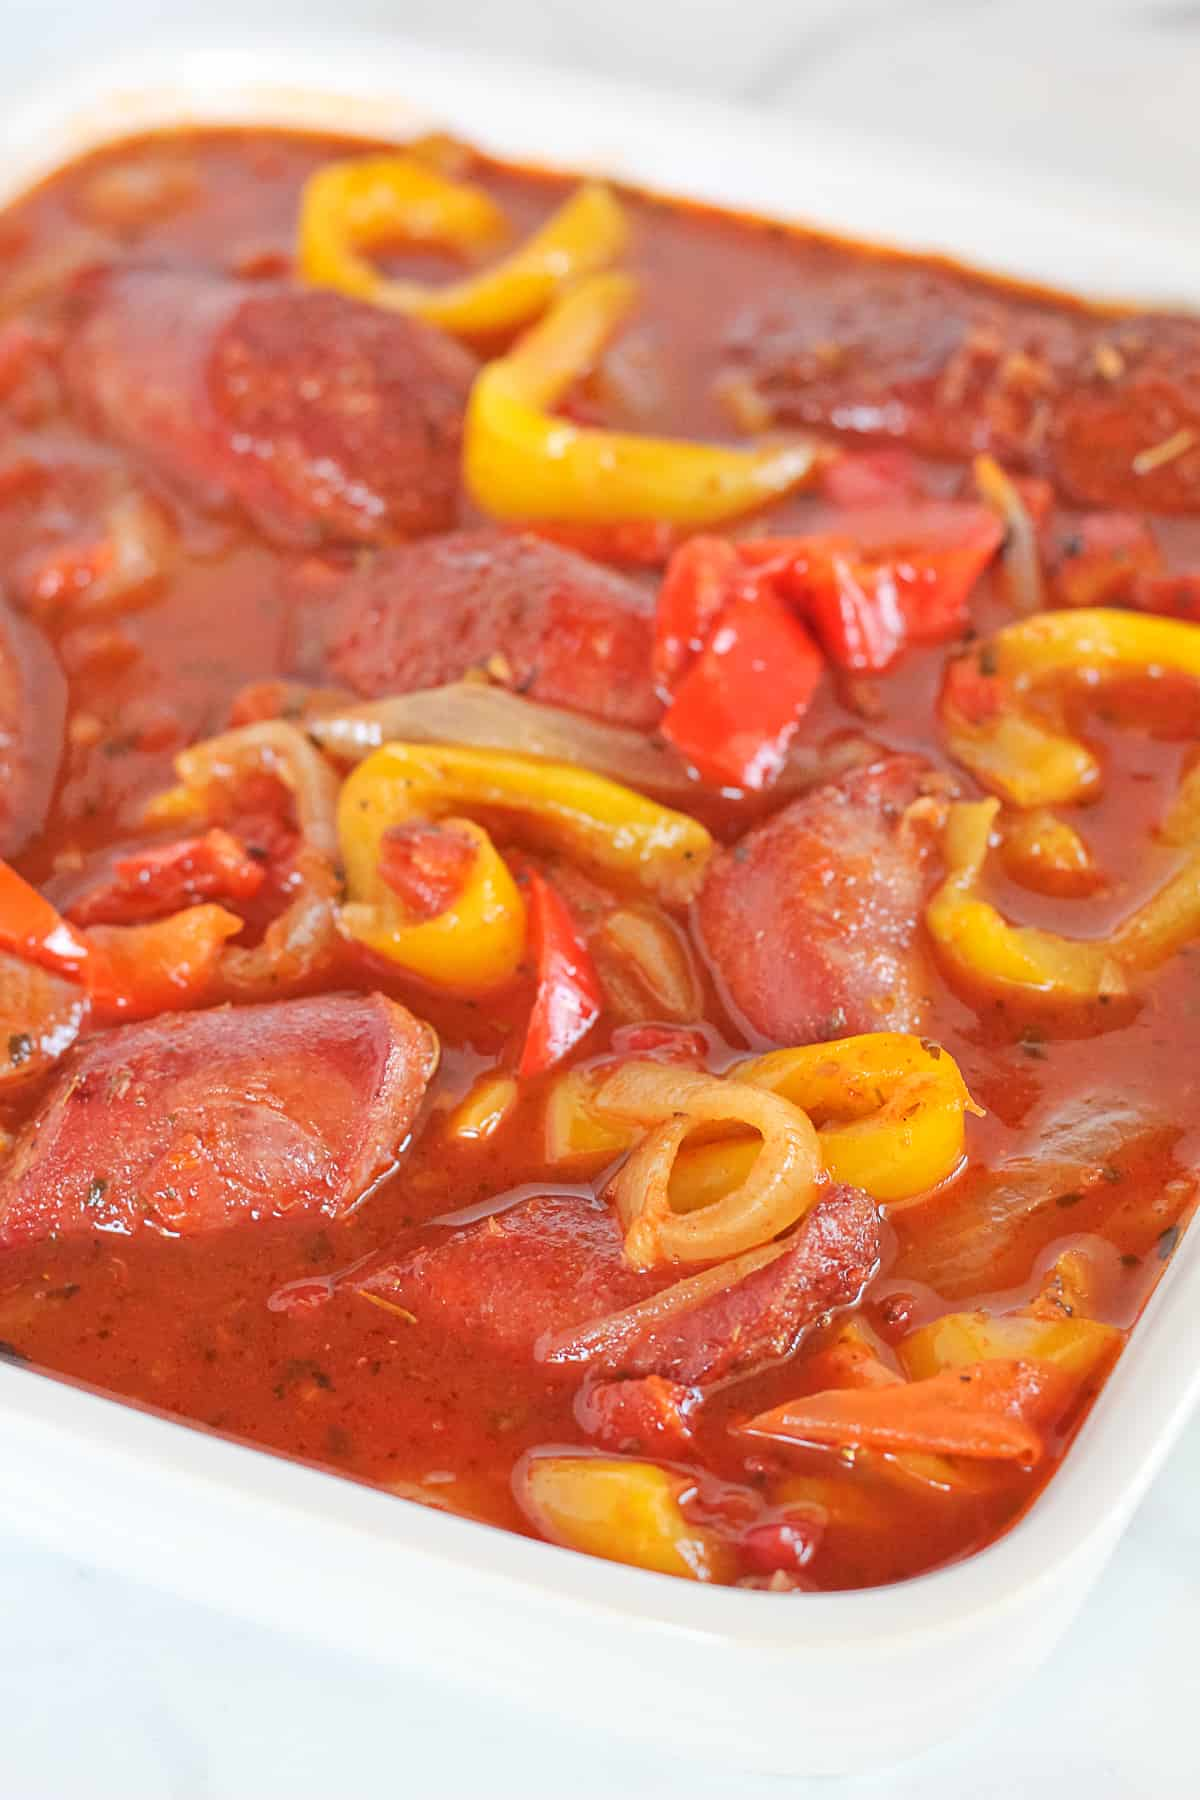 Sausage, peppers and onions in a white dish.